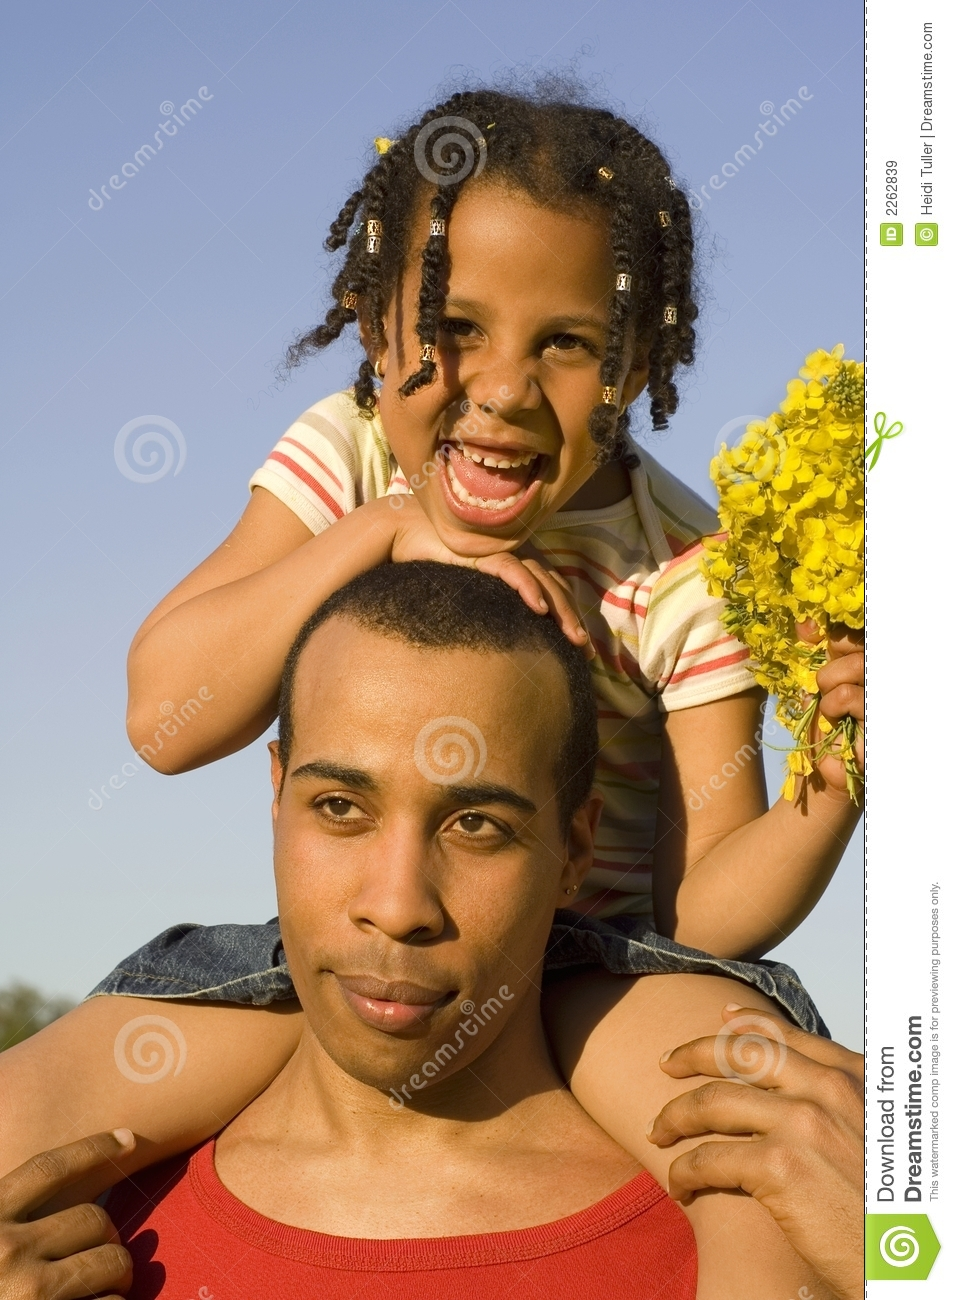 Happy child with father